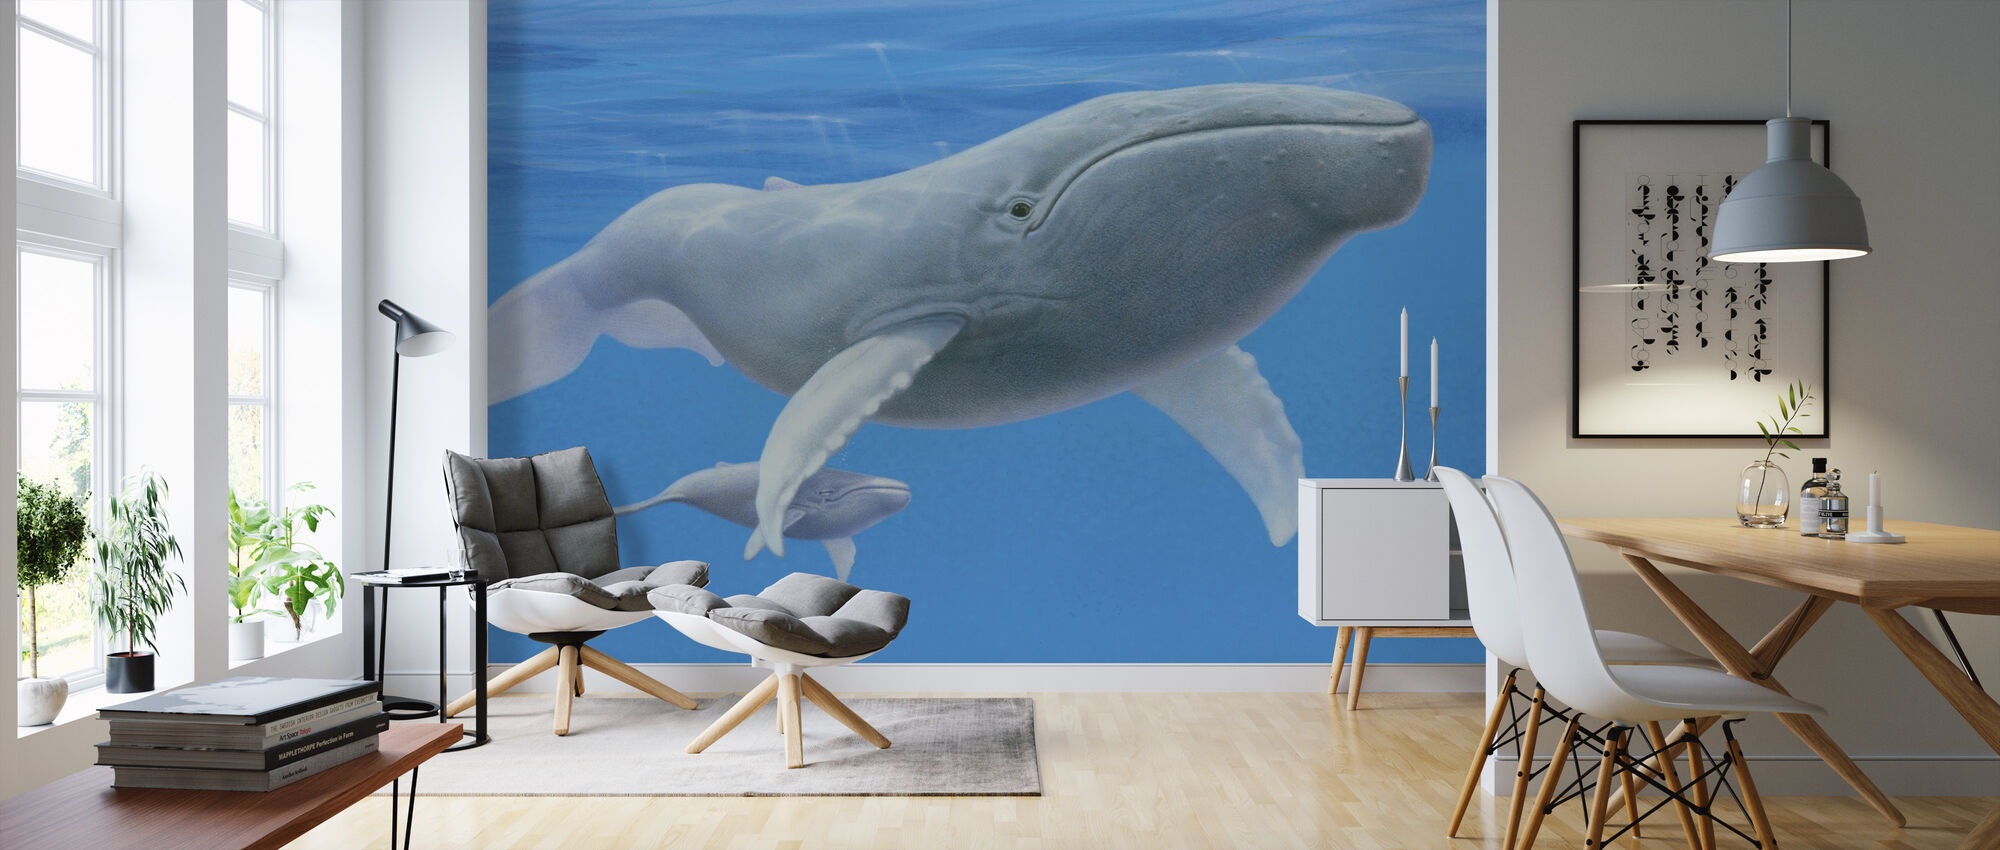 Whale Baby - Wallpaper - Living Room